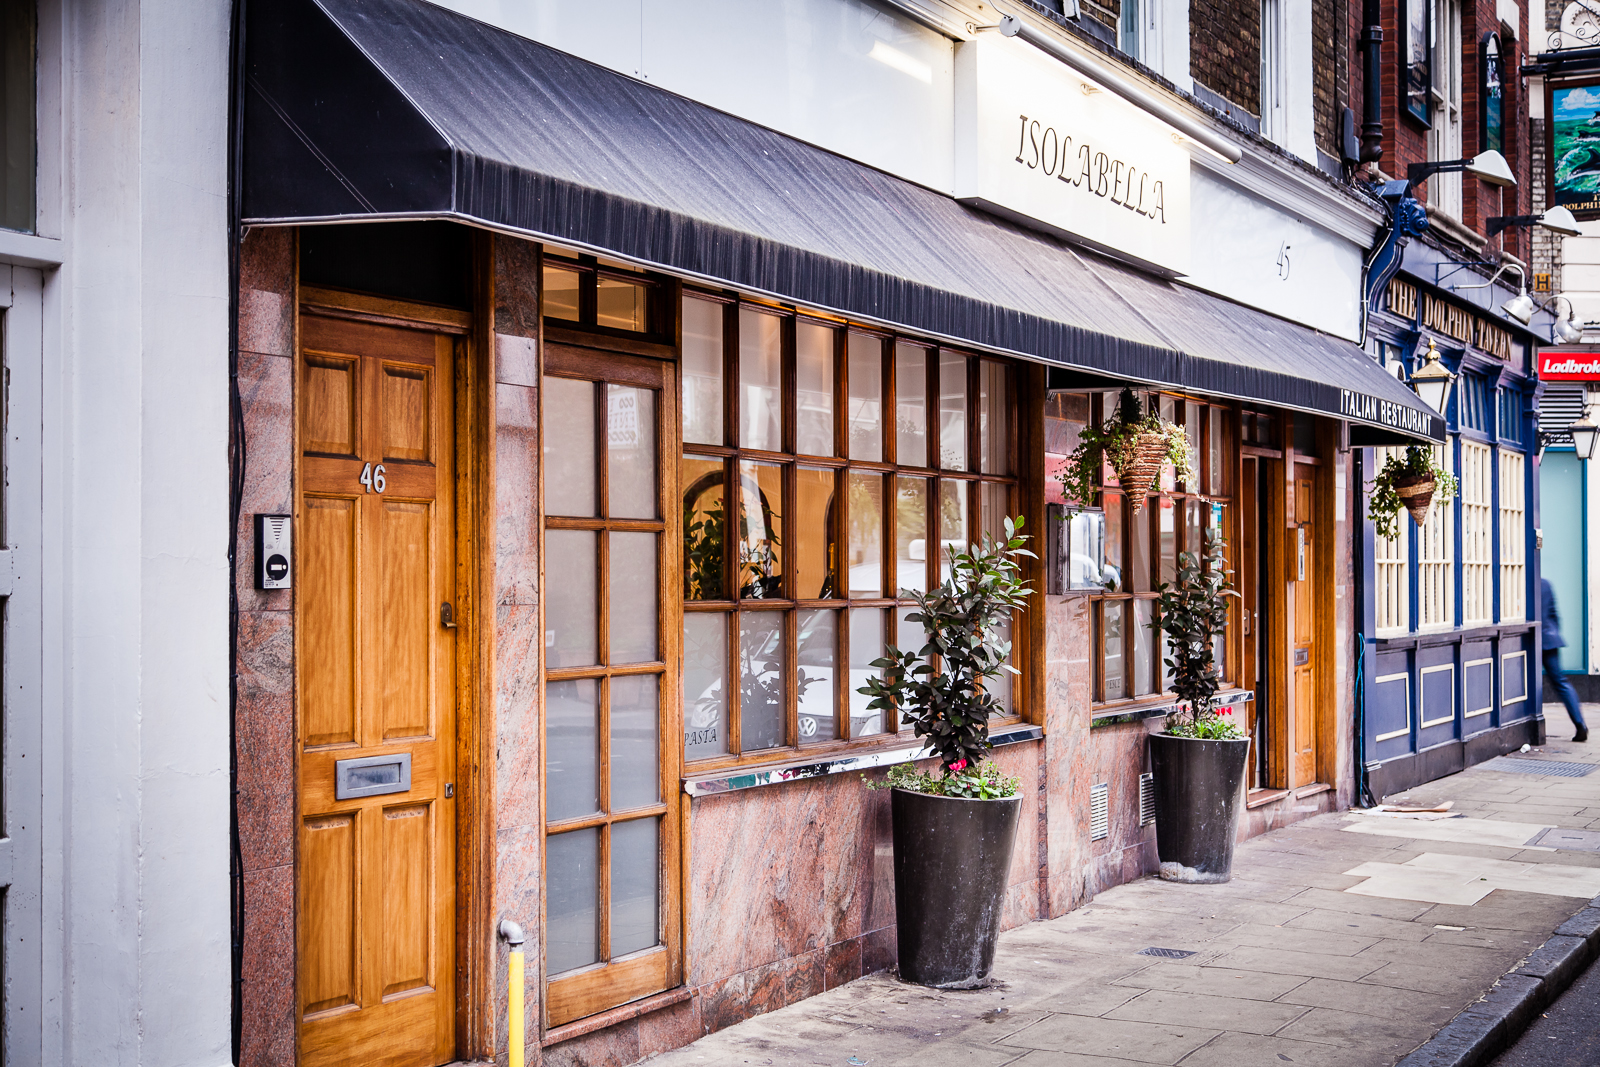 IsolaBella Restaurant - London